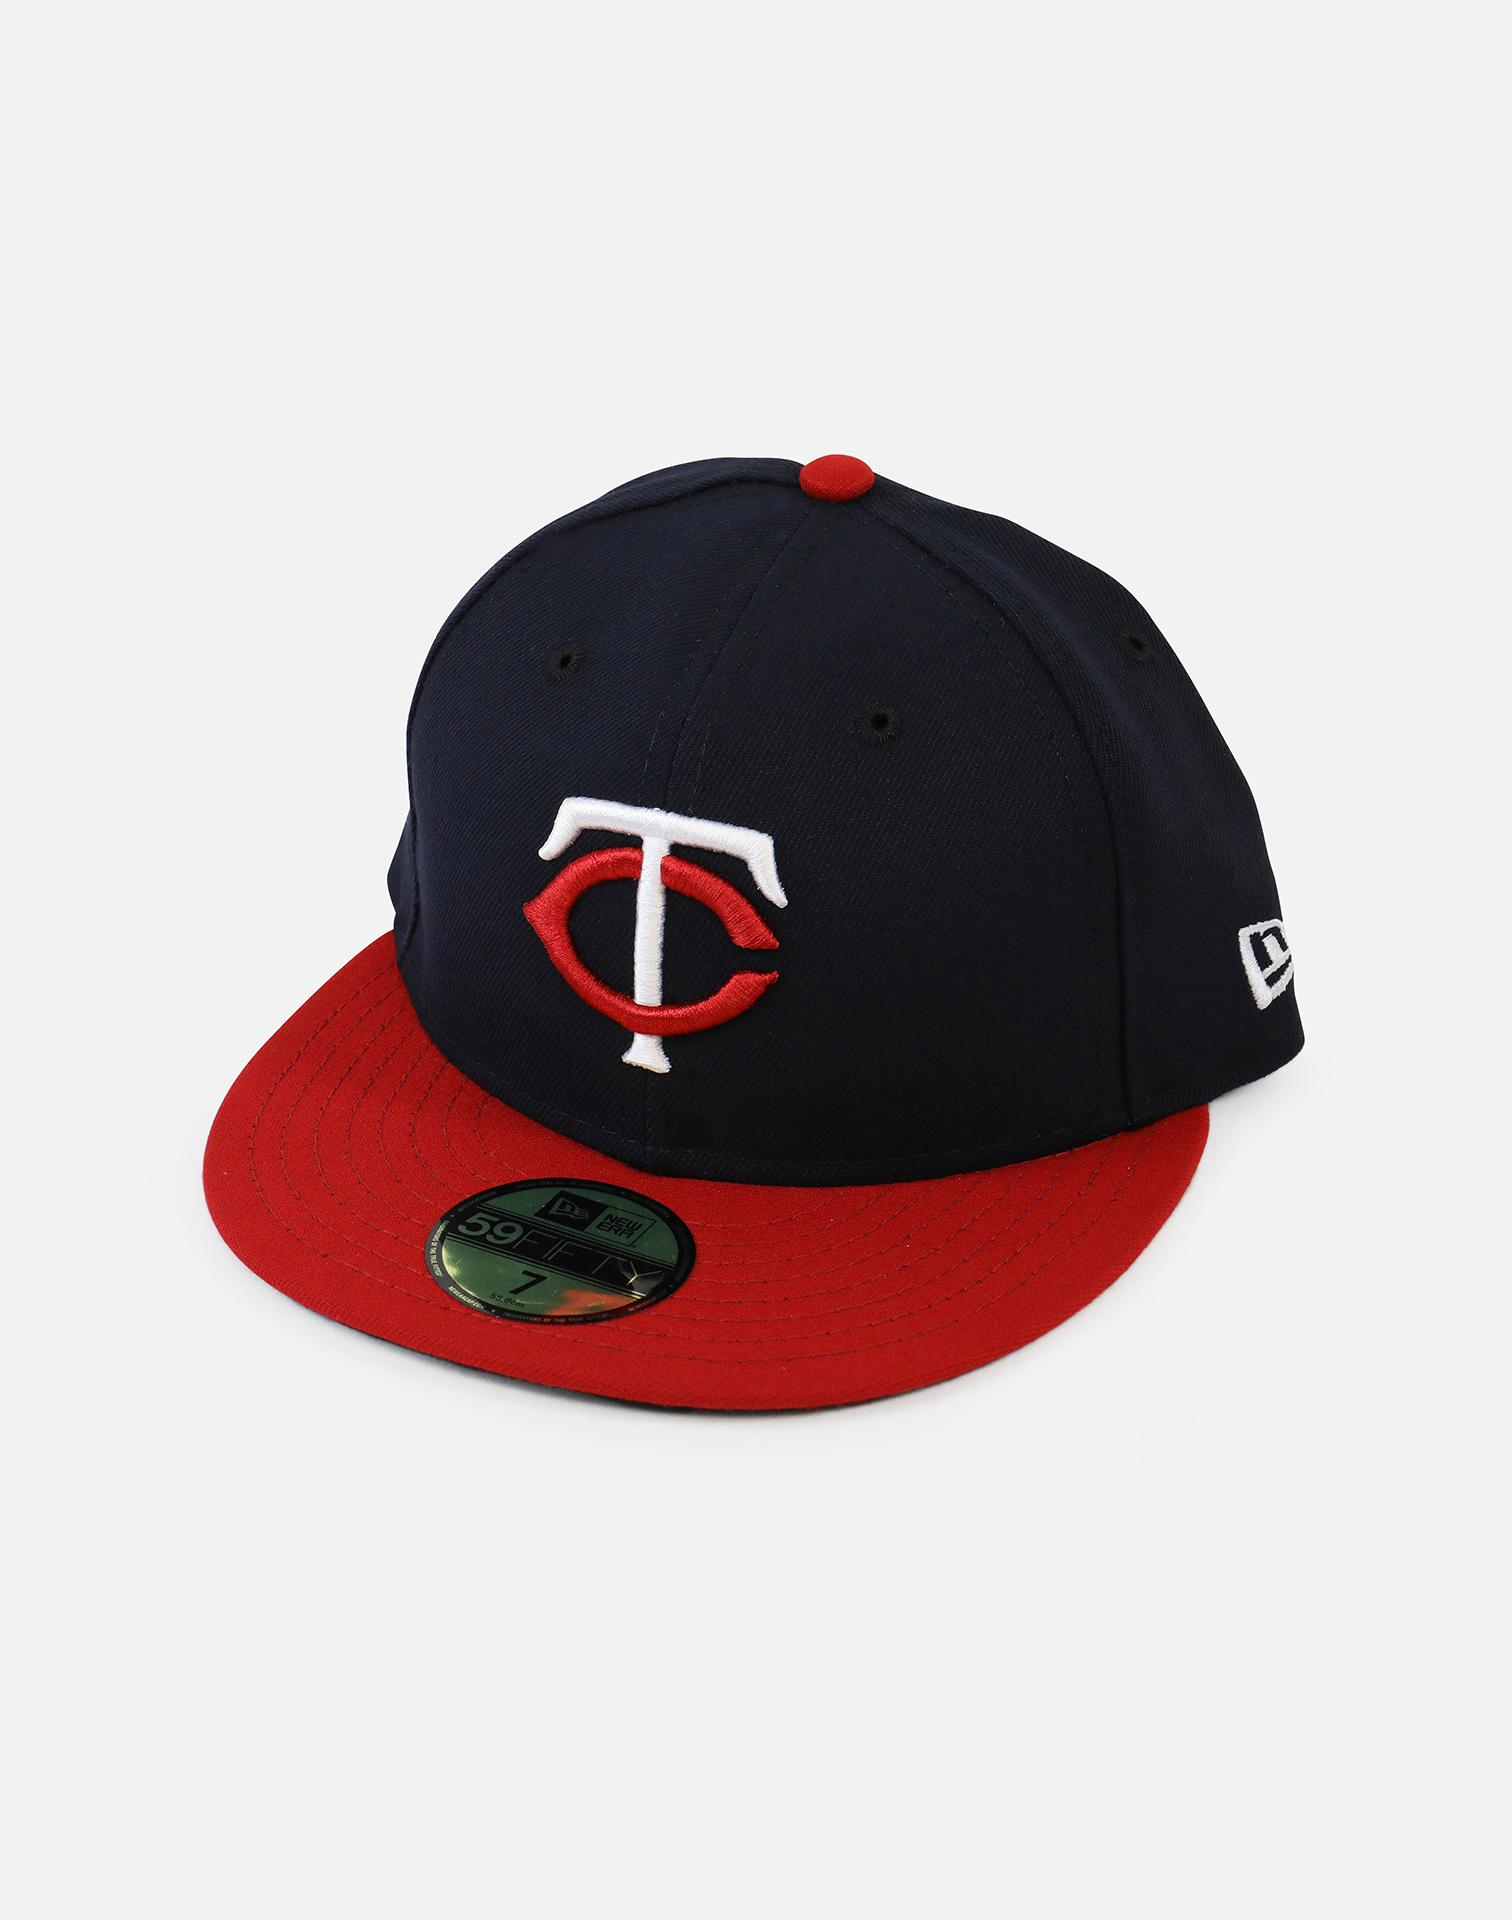 0432c546e31 Lyst - Ktz Minnesota Twins Authentic Fitted Hat in Blue for Men